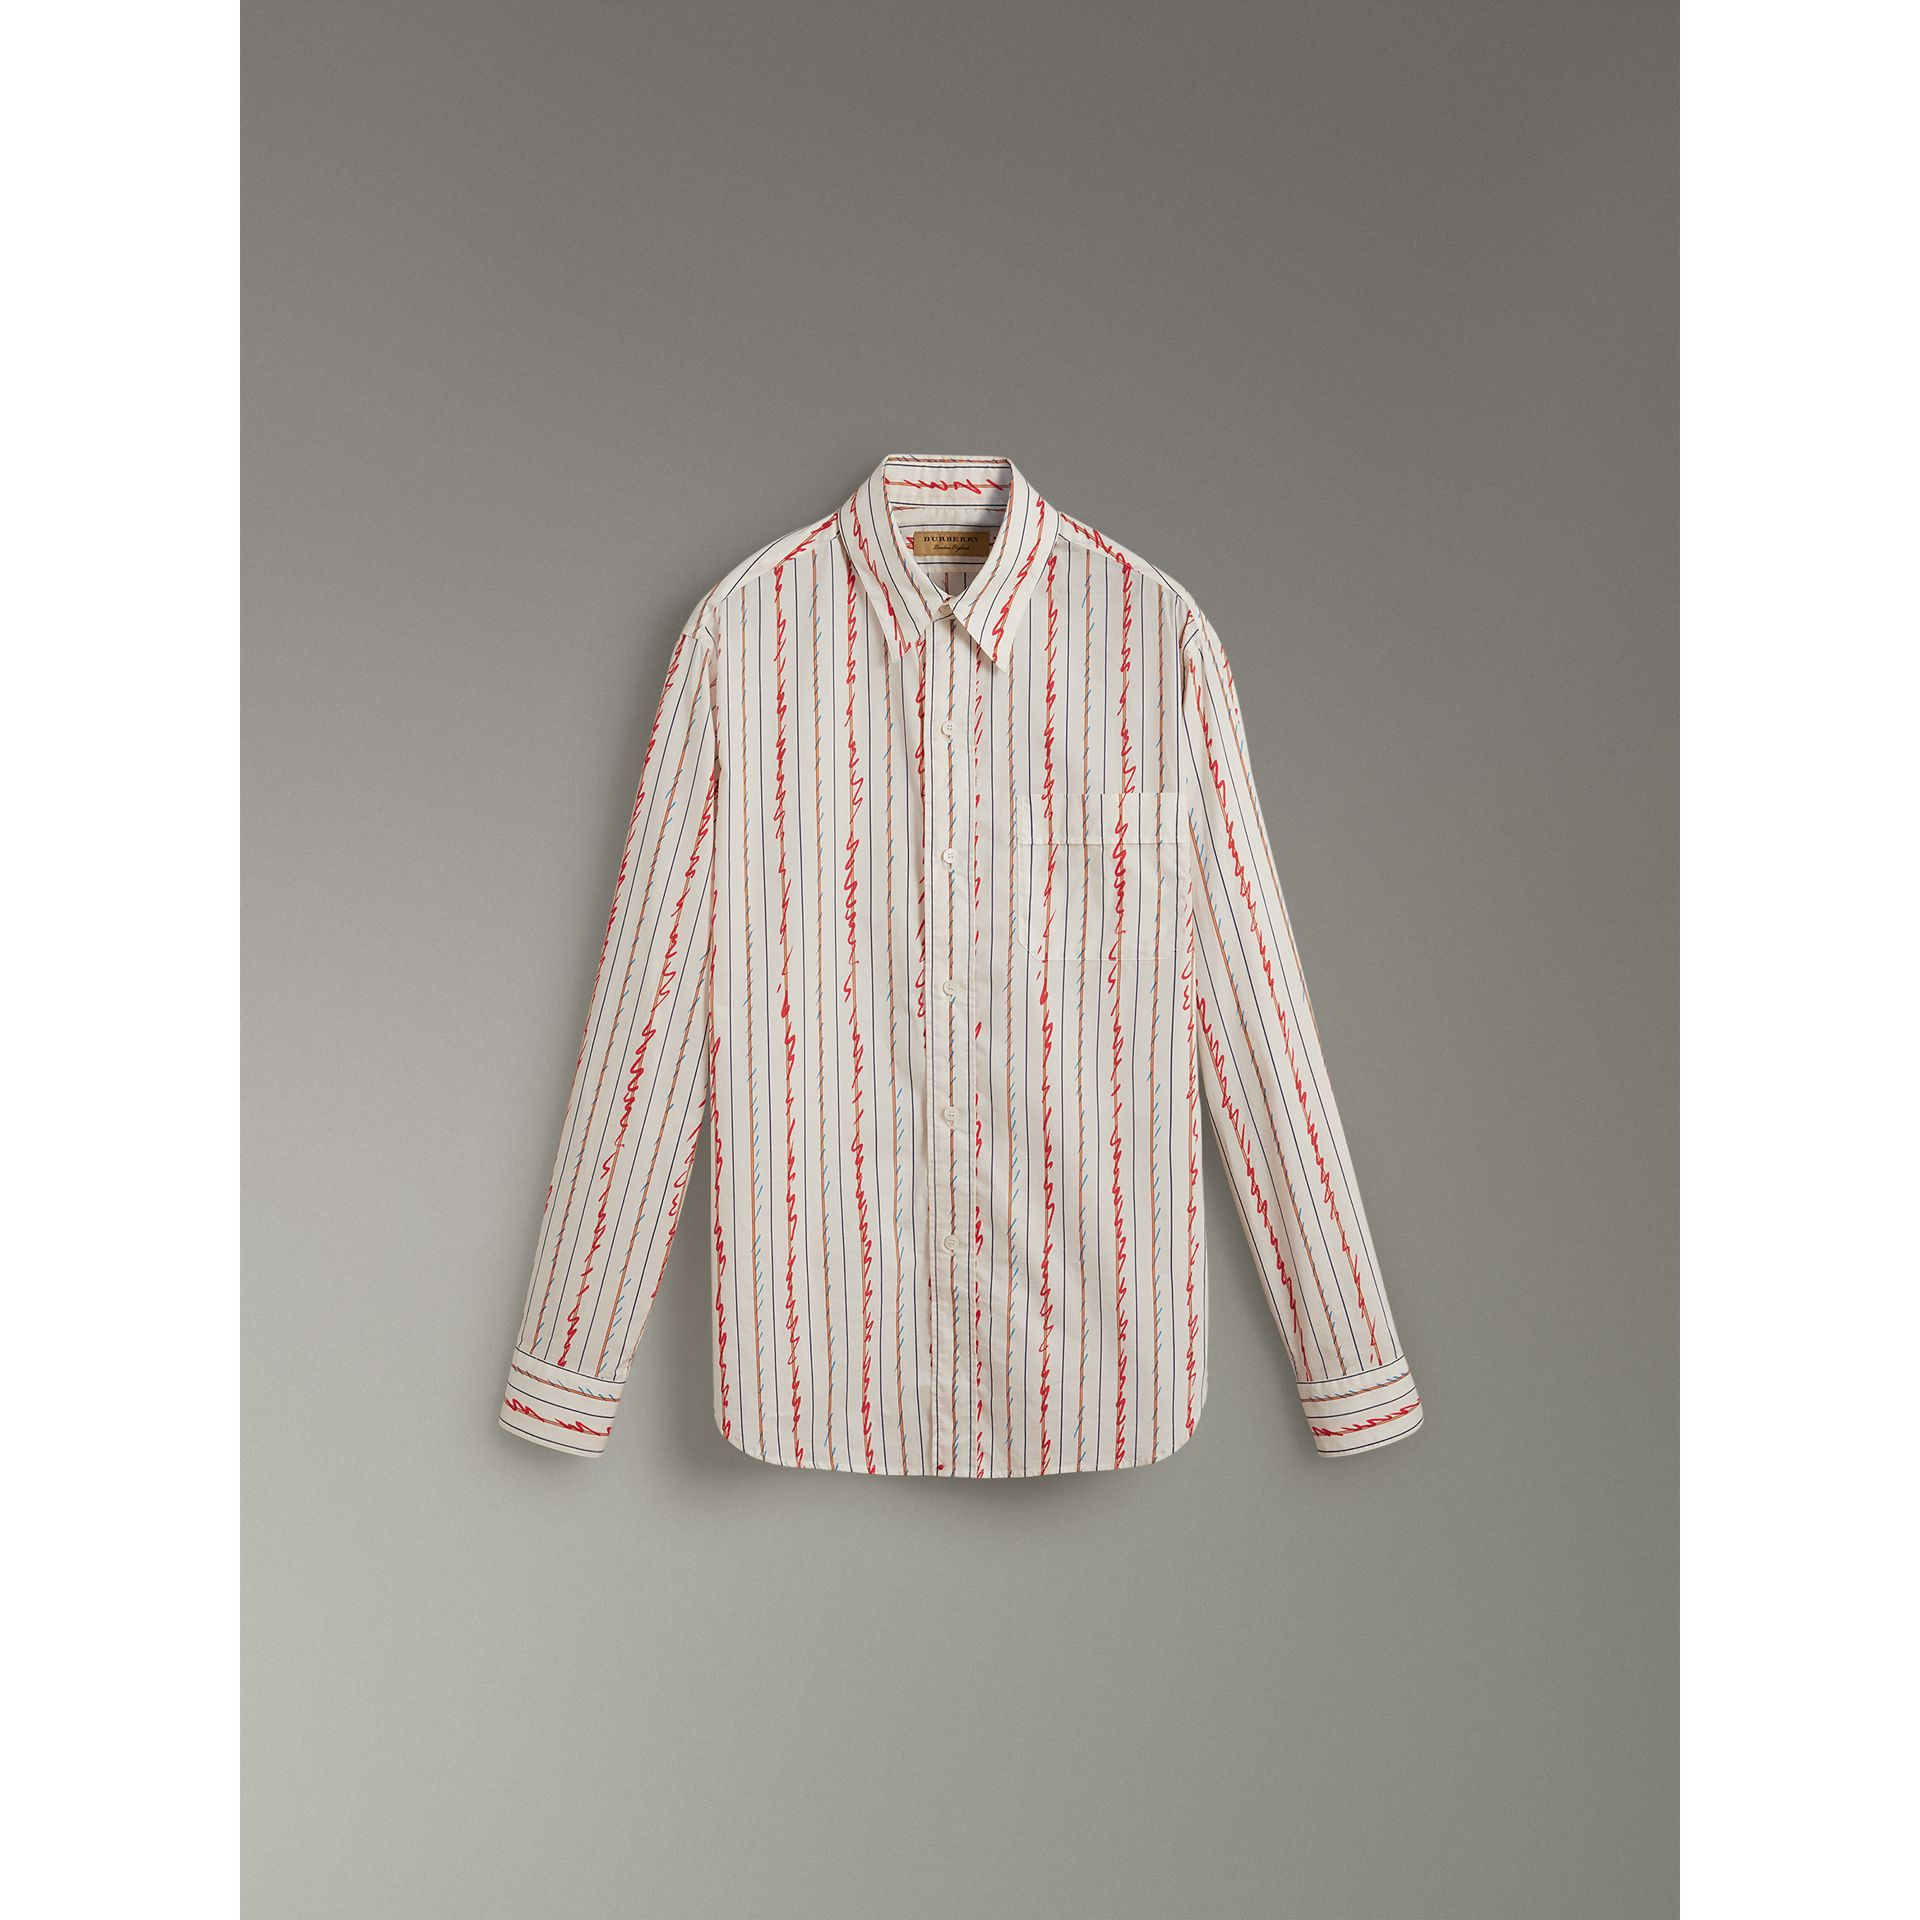 Scribble Stripe Cotton Shirt in Red - Men | Burberry - gallery image 3